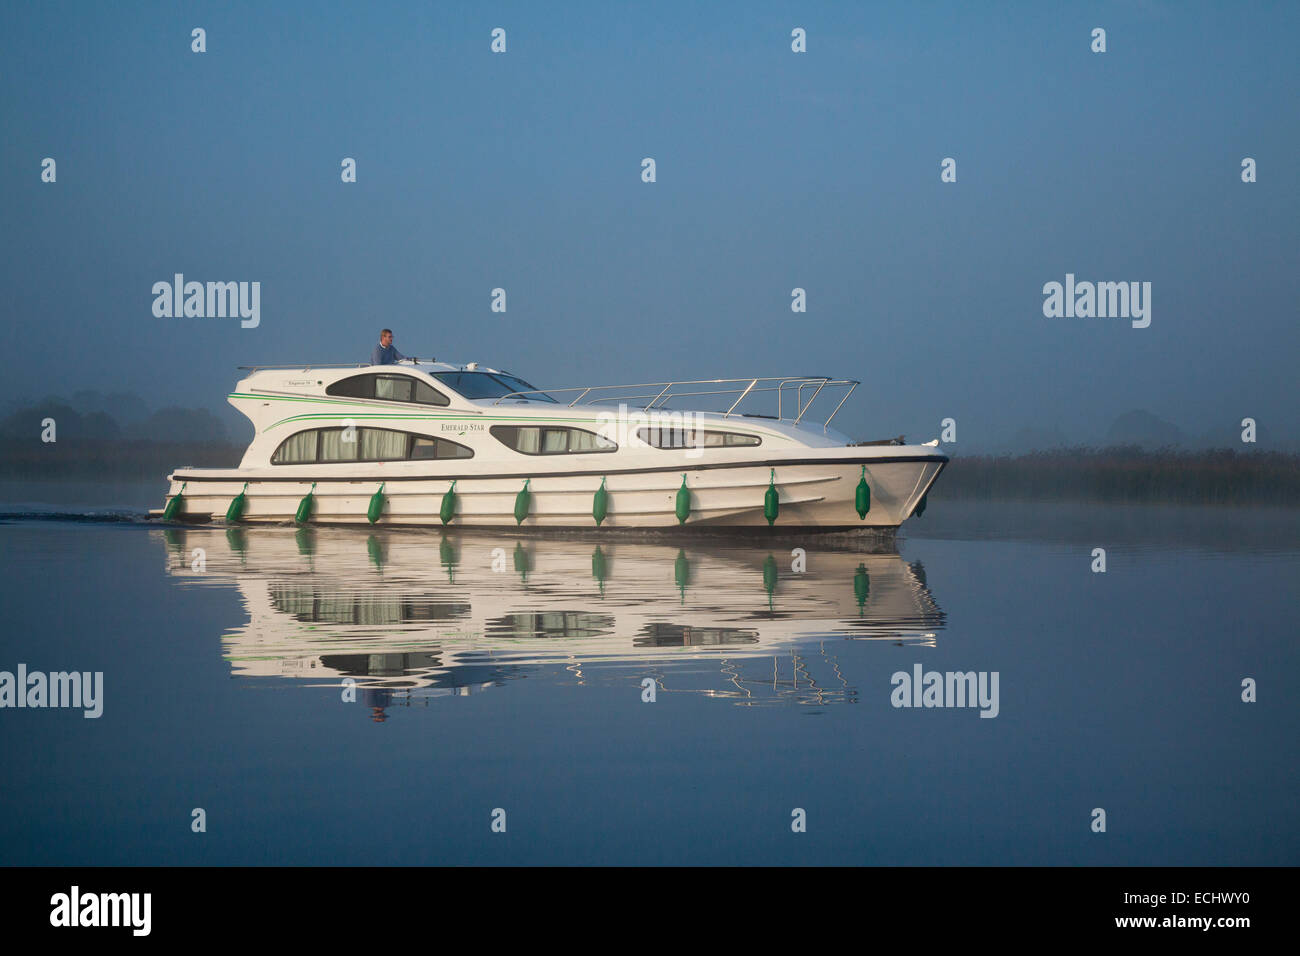 Reflection of a cruise boat crossing Lough Ree, River Shannon, County Westmeath, Ireland. Stock Photo